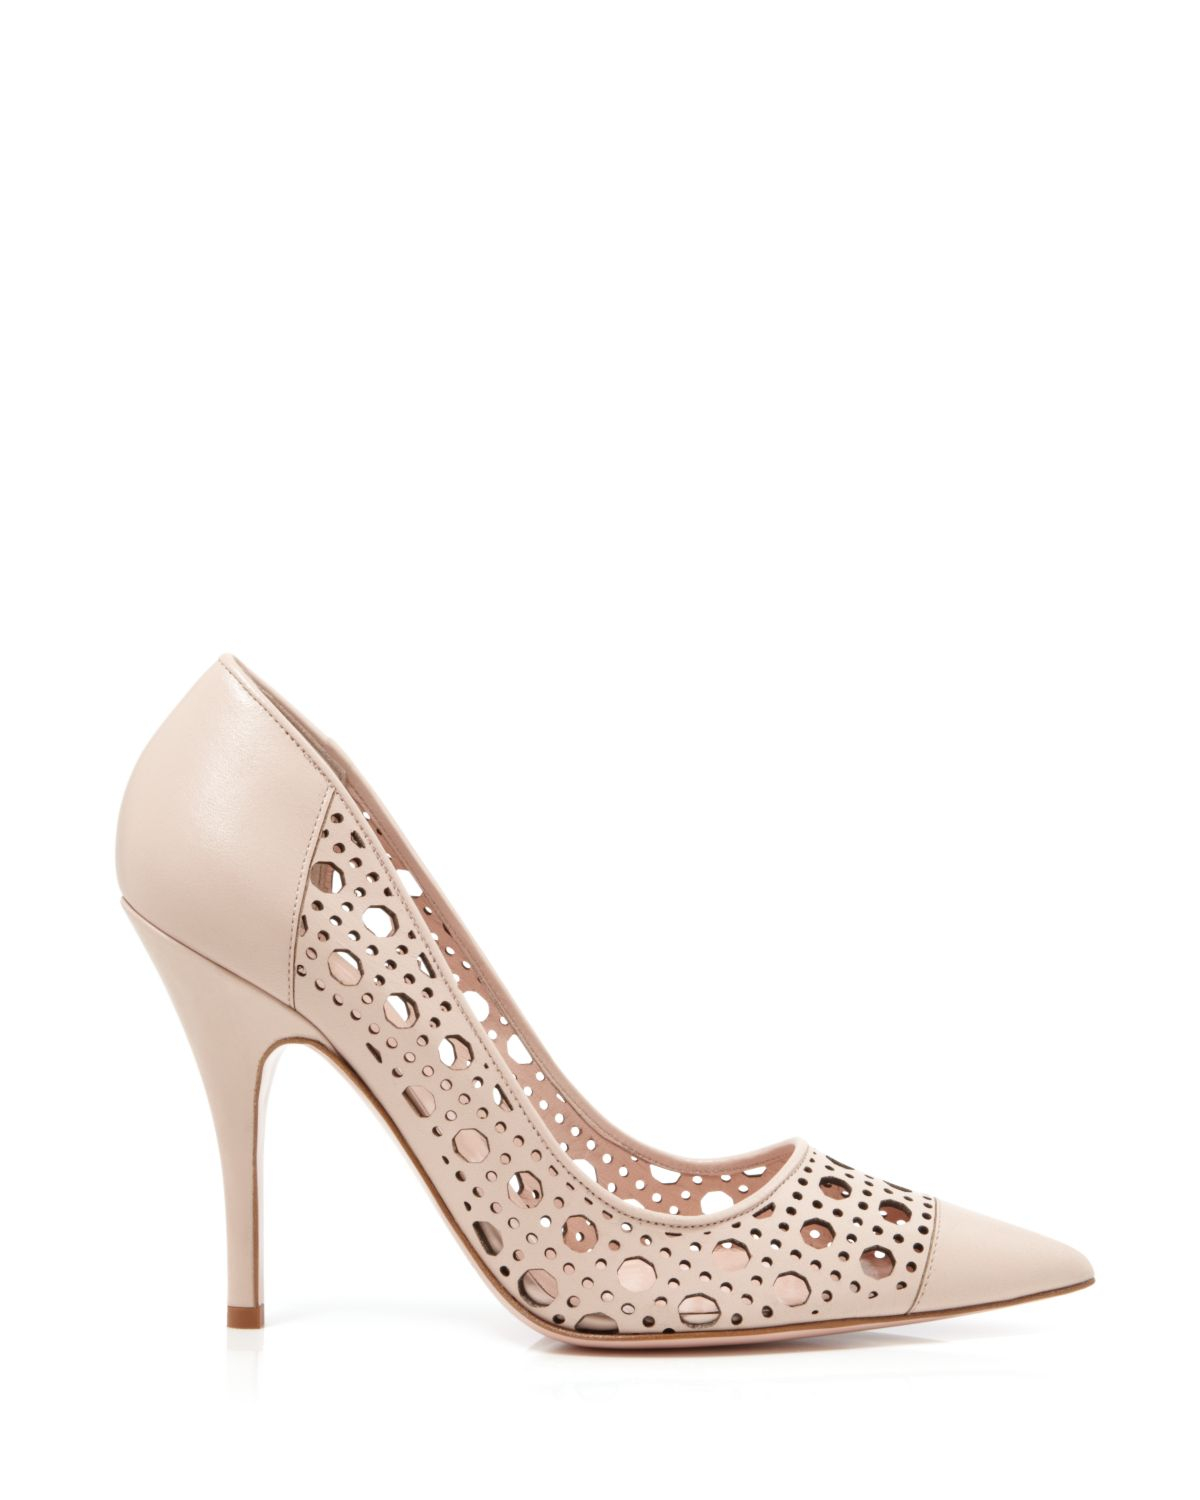 Kate spade new york Perforated Pumps - Lizette High Heel in Pink